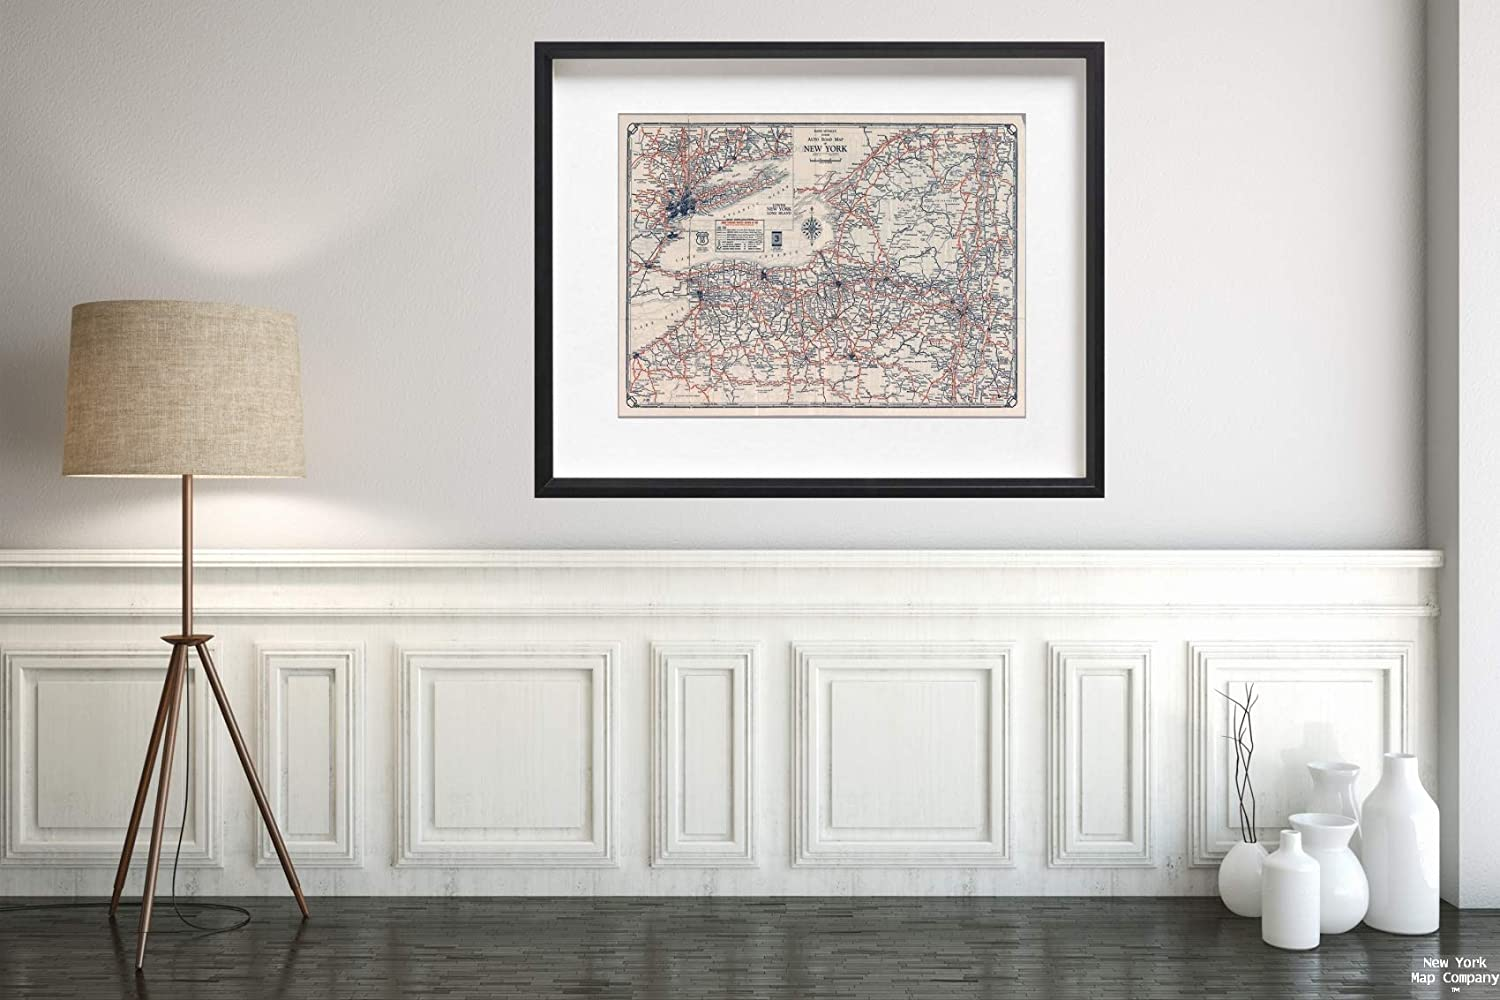 Map|Rand McNally Junior auto Road : New York, 1927|Historic Antique Vintage Reprint|Size: 18x24|Ready to Frame